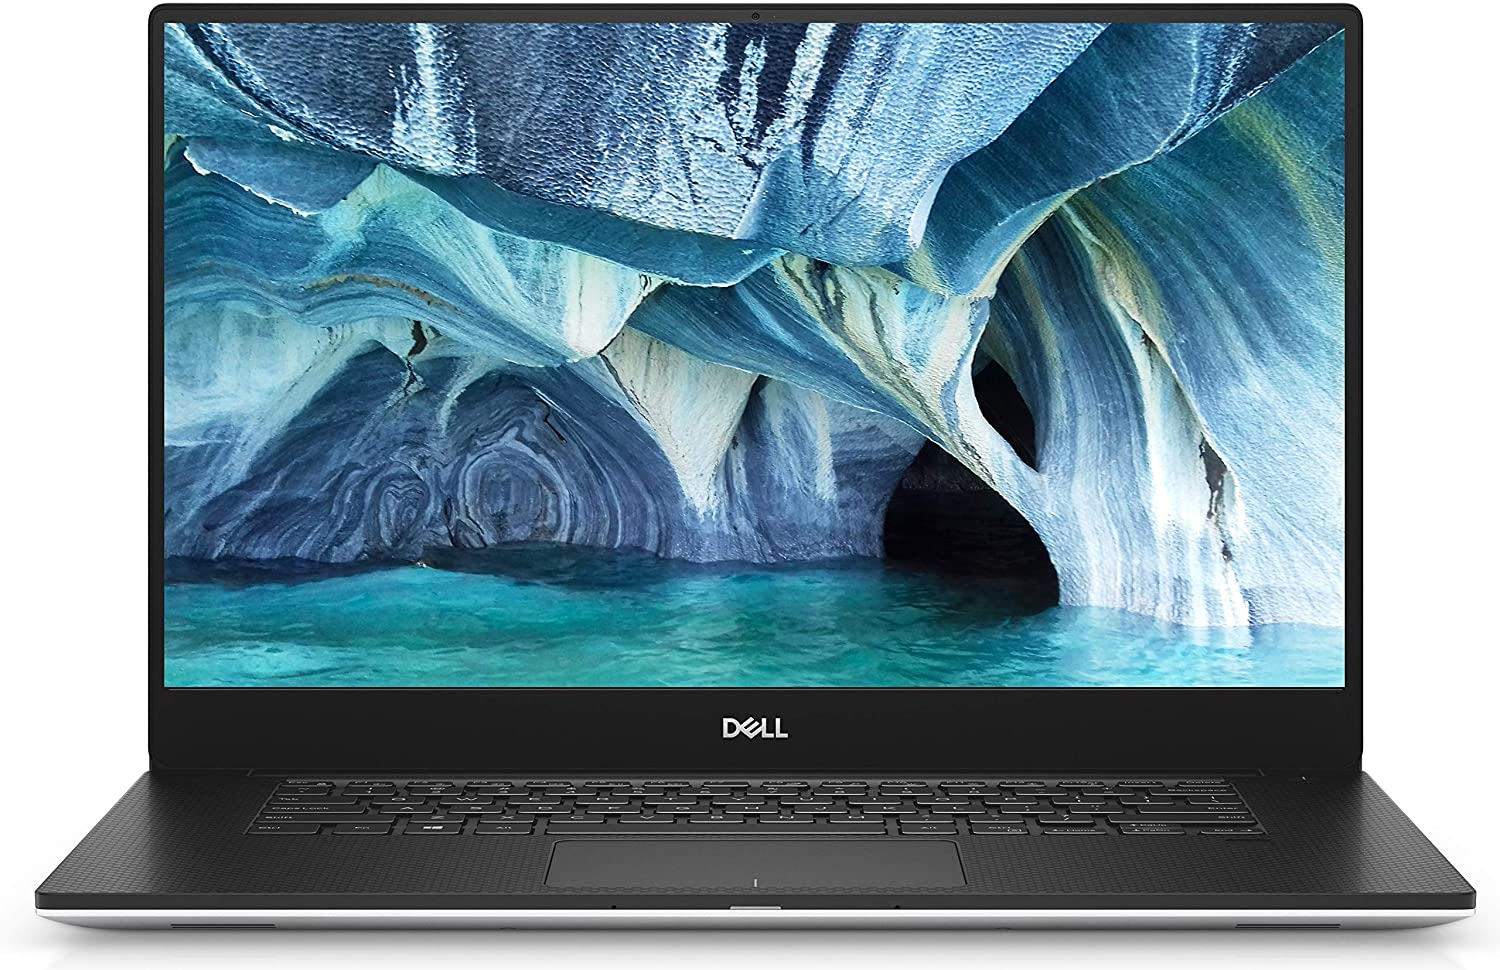 Dell XPS 15 1 best laptop for computer science students